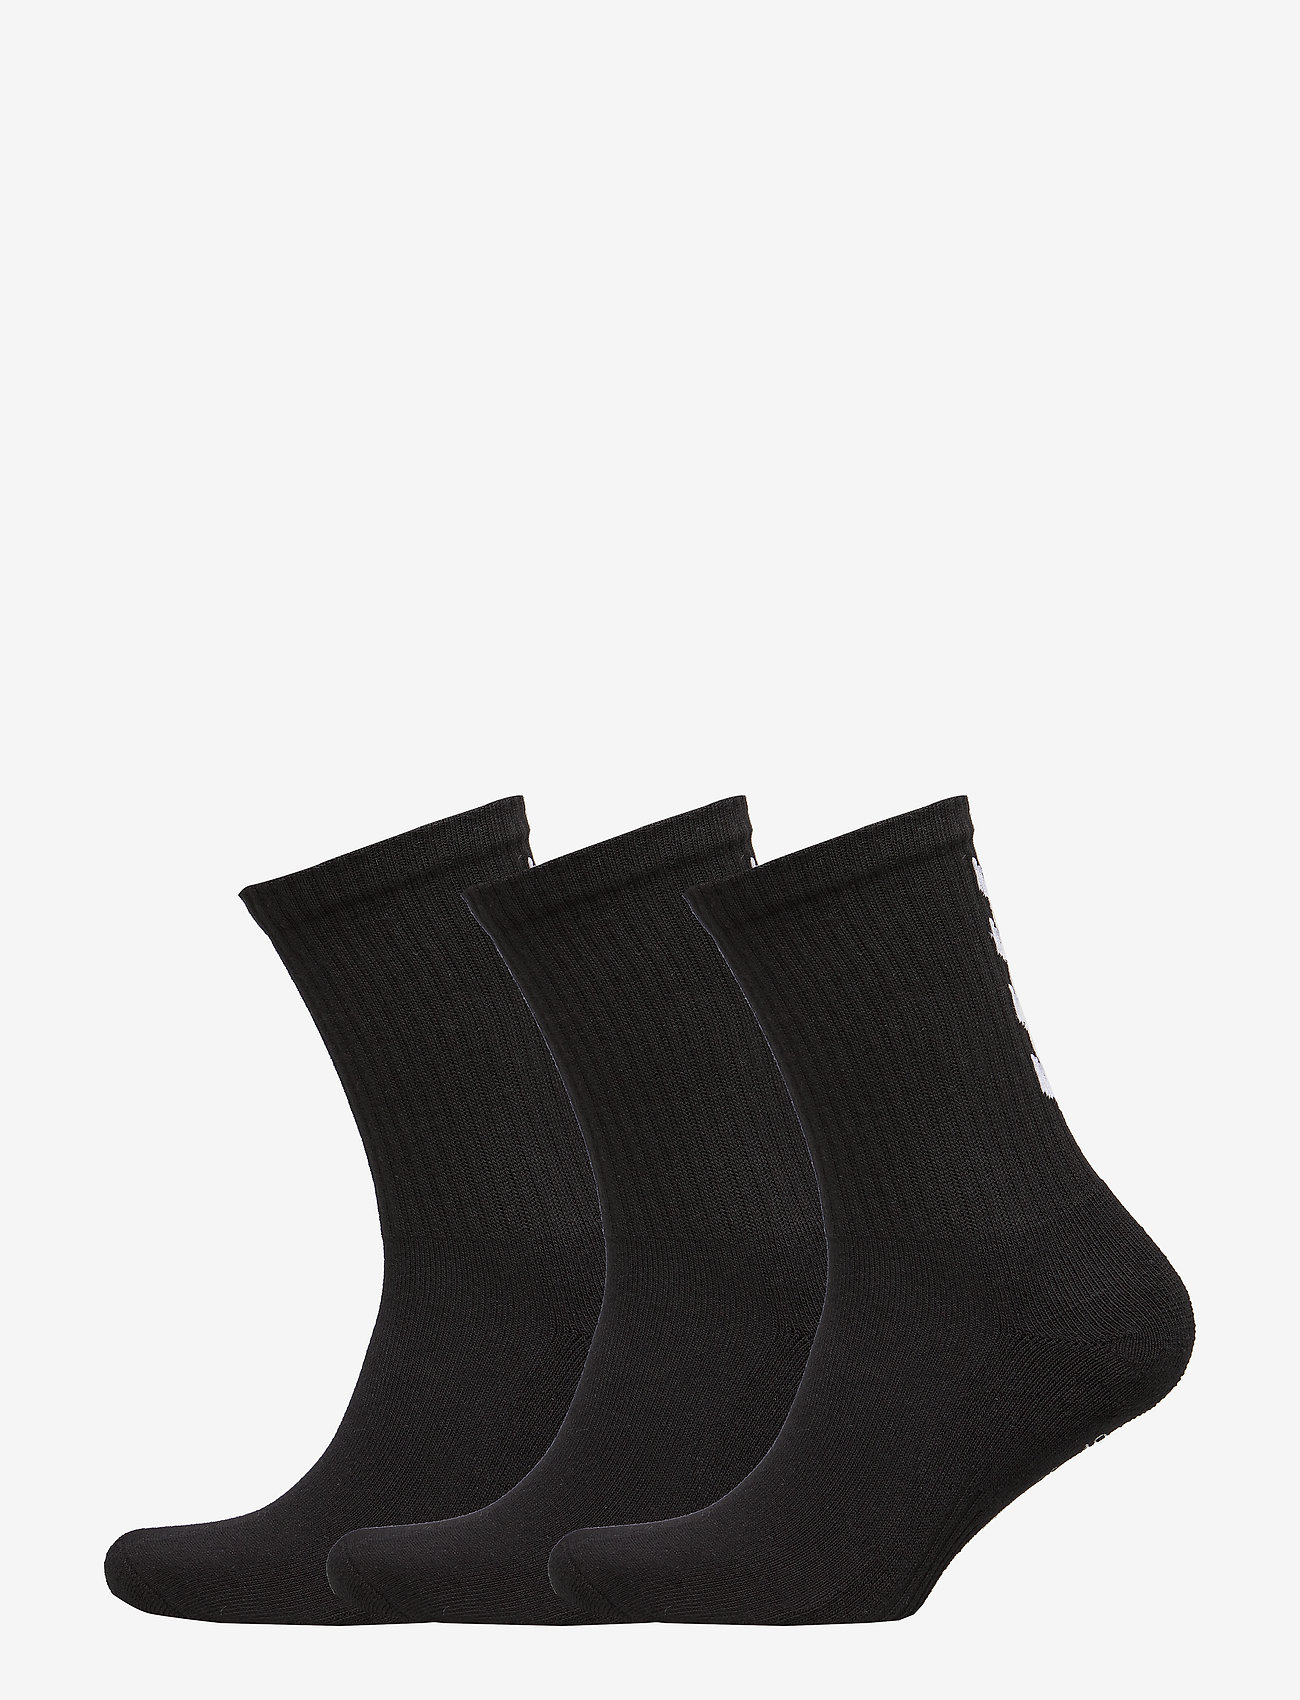 Hummel - FUNDAMENTAL 3-PACK SOCK - regular socks - black - 0